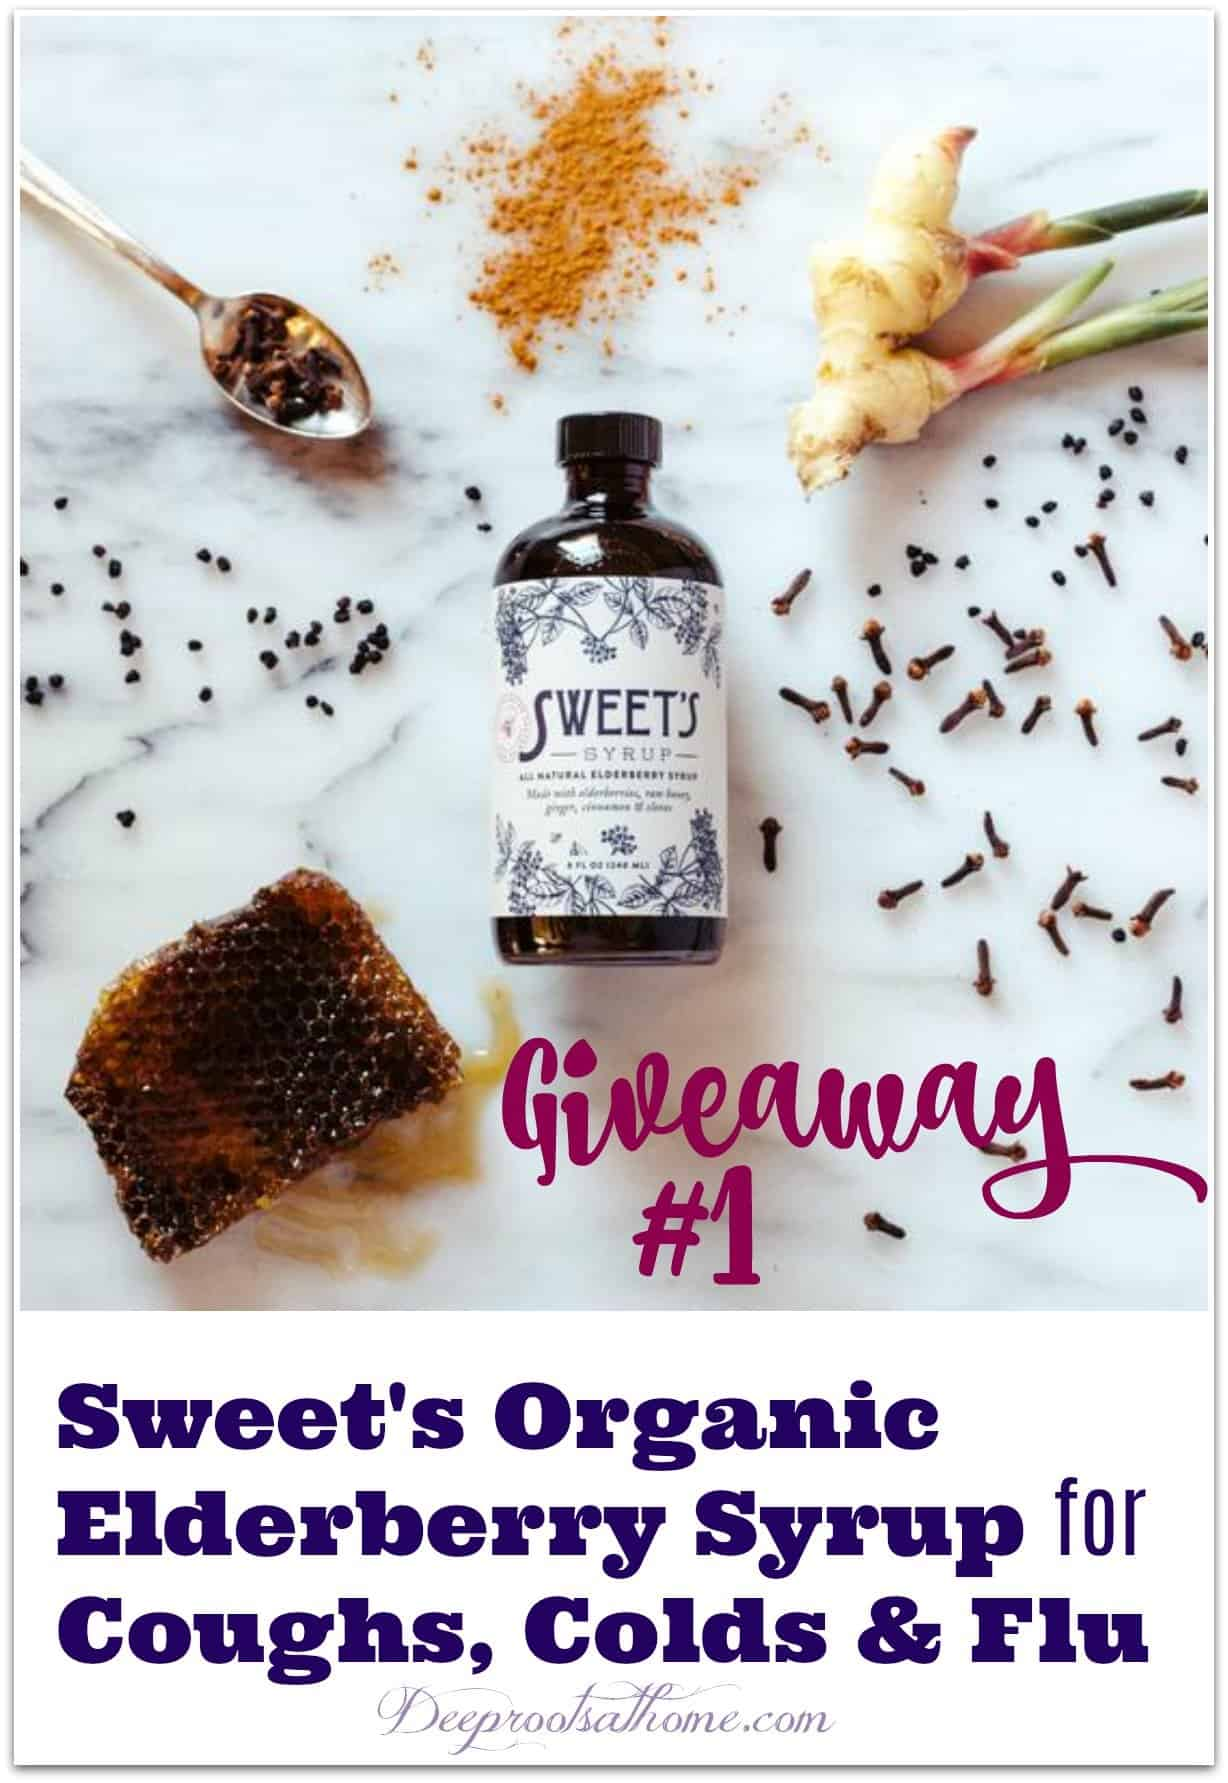 Giveaway #1: Sweet's Organic Elderberry Syrup For Coughs, Colds & Flu. Giving away an 8 oz, bottle